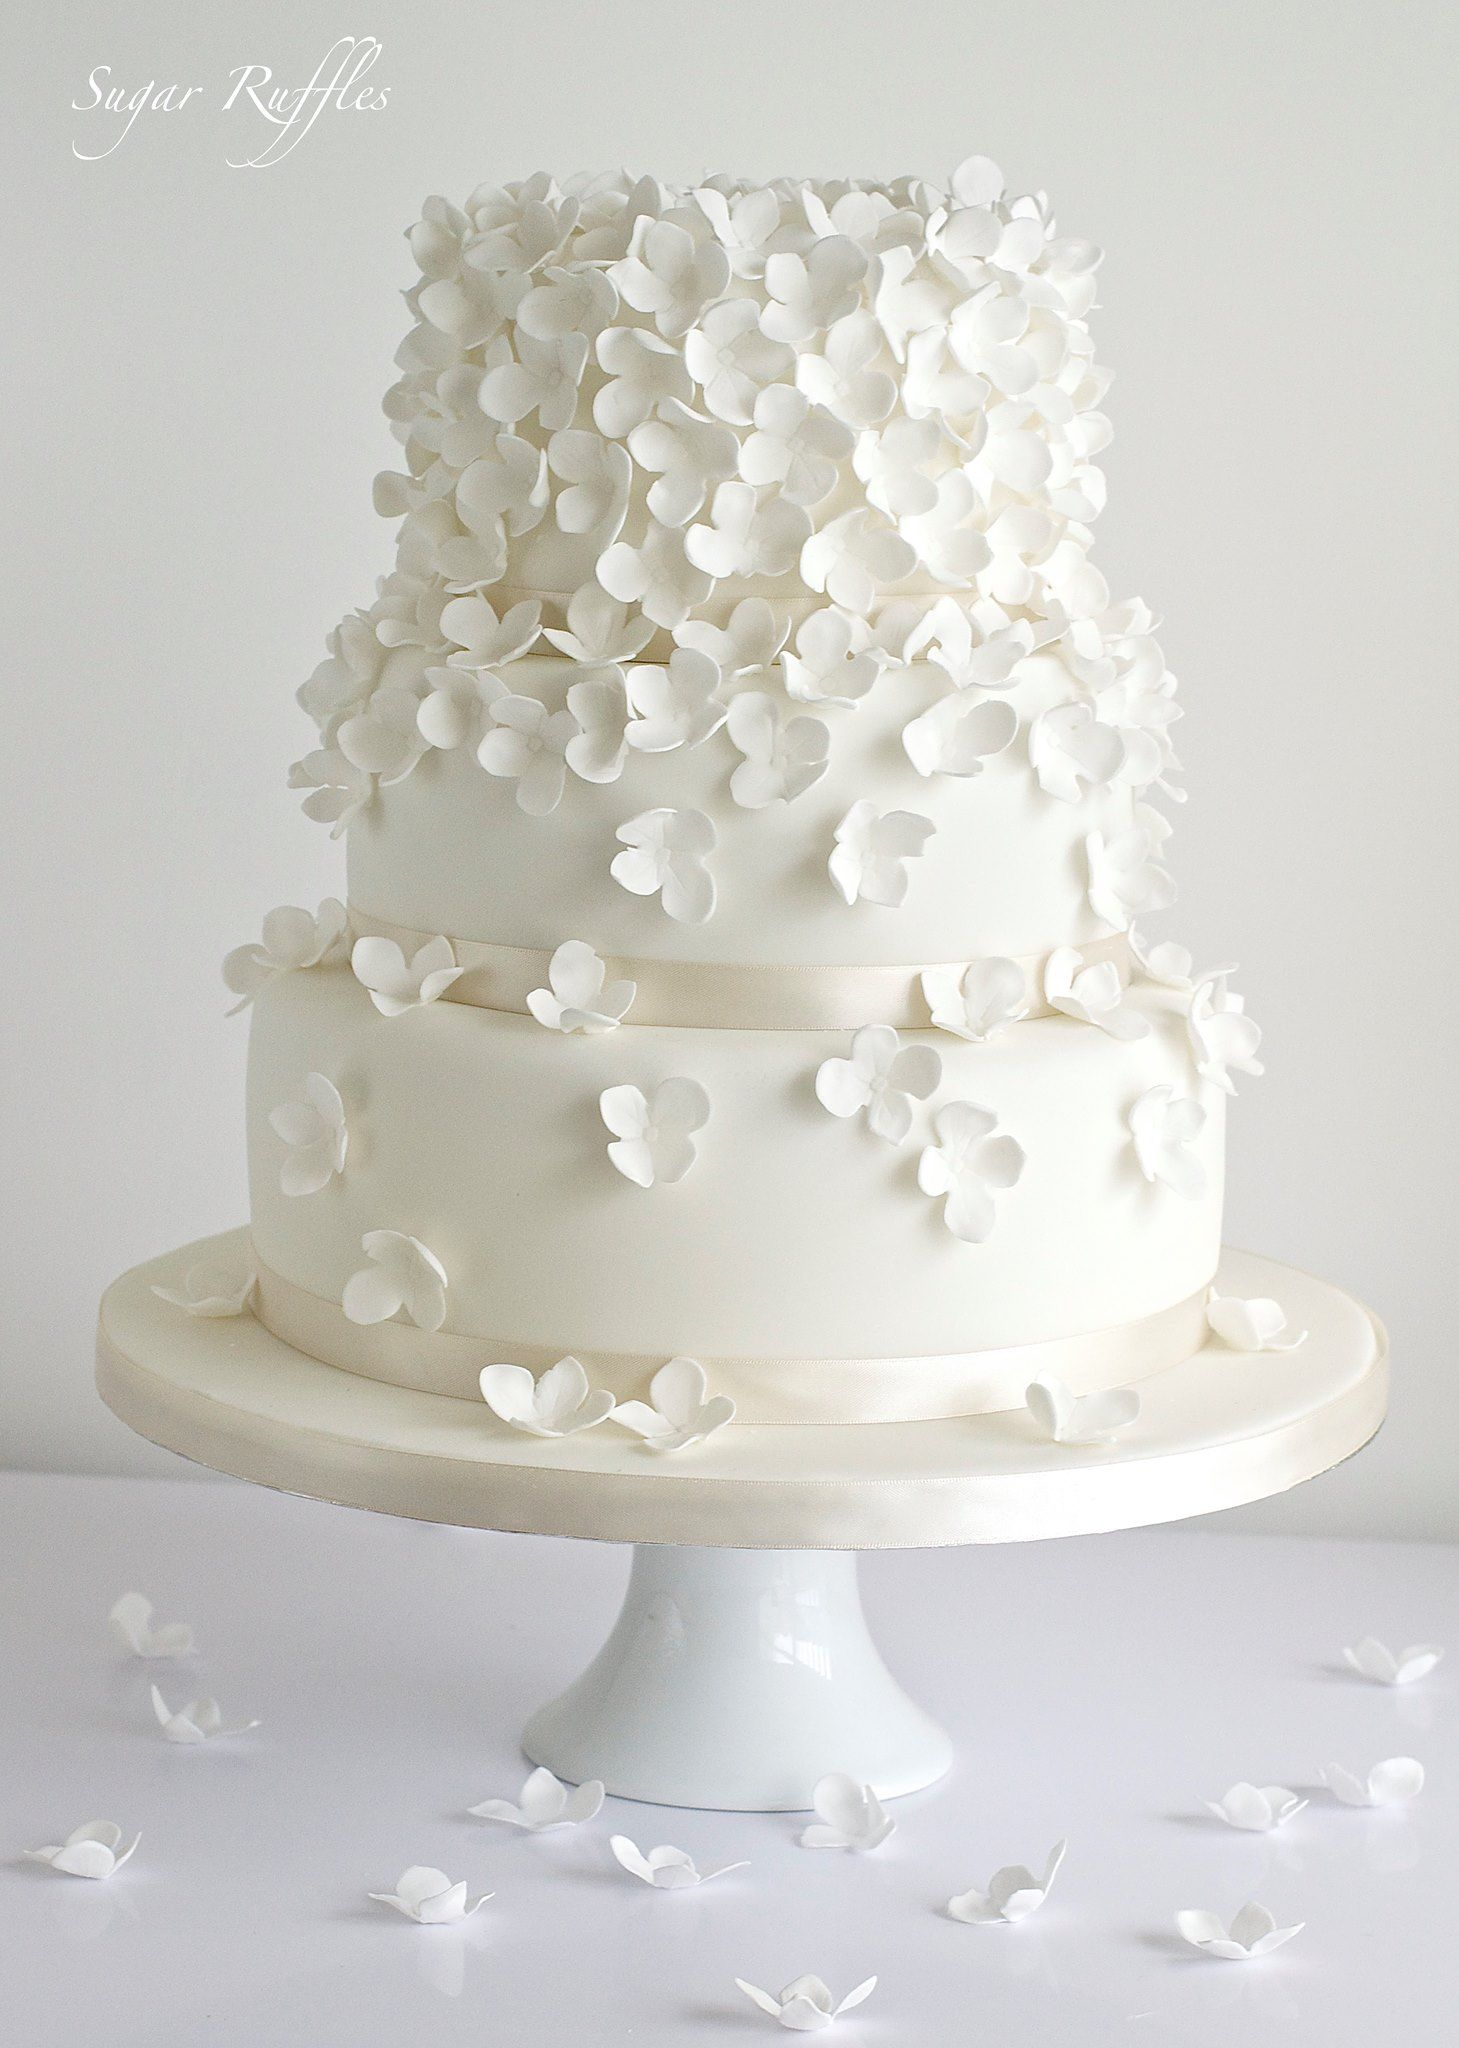 Delicate Wedding Cakes | Pinterest | Wedding cake inspiration ...